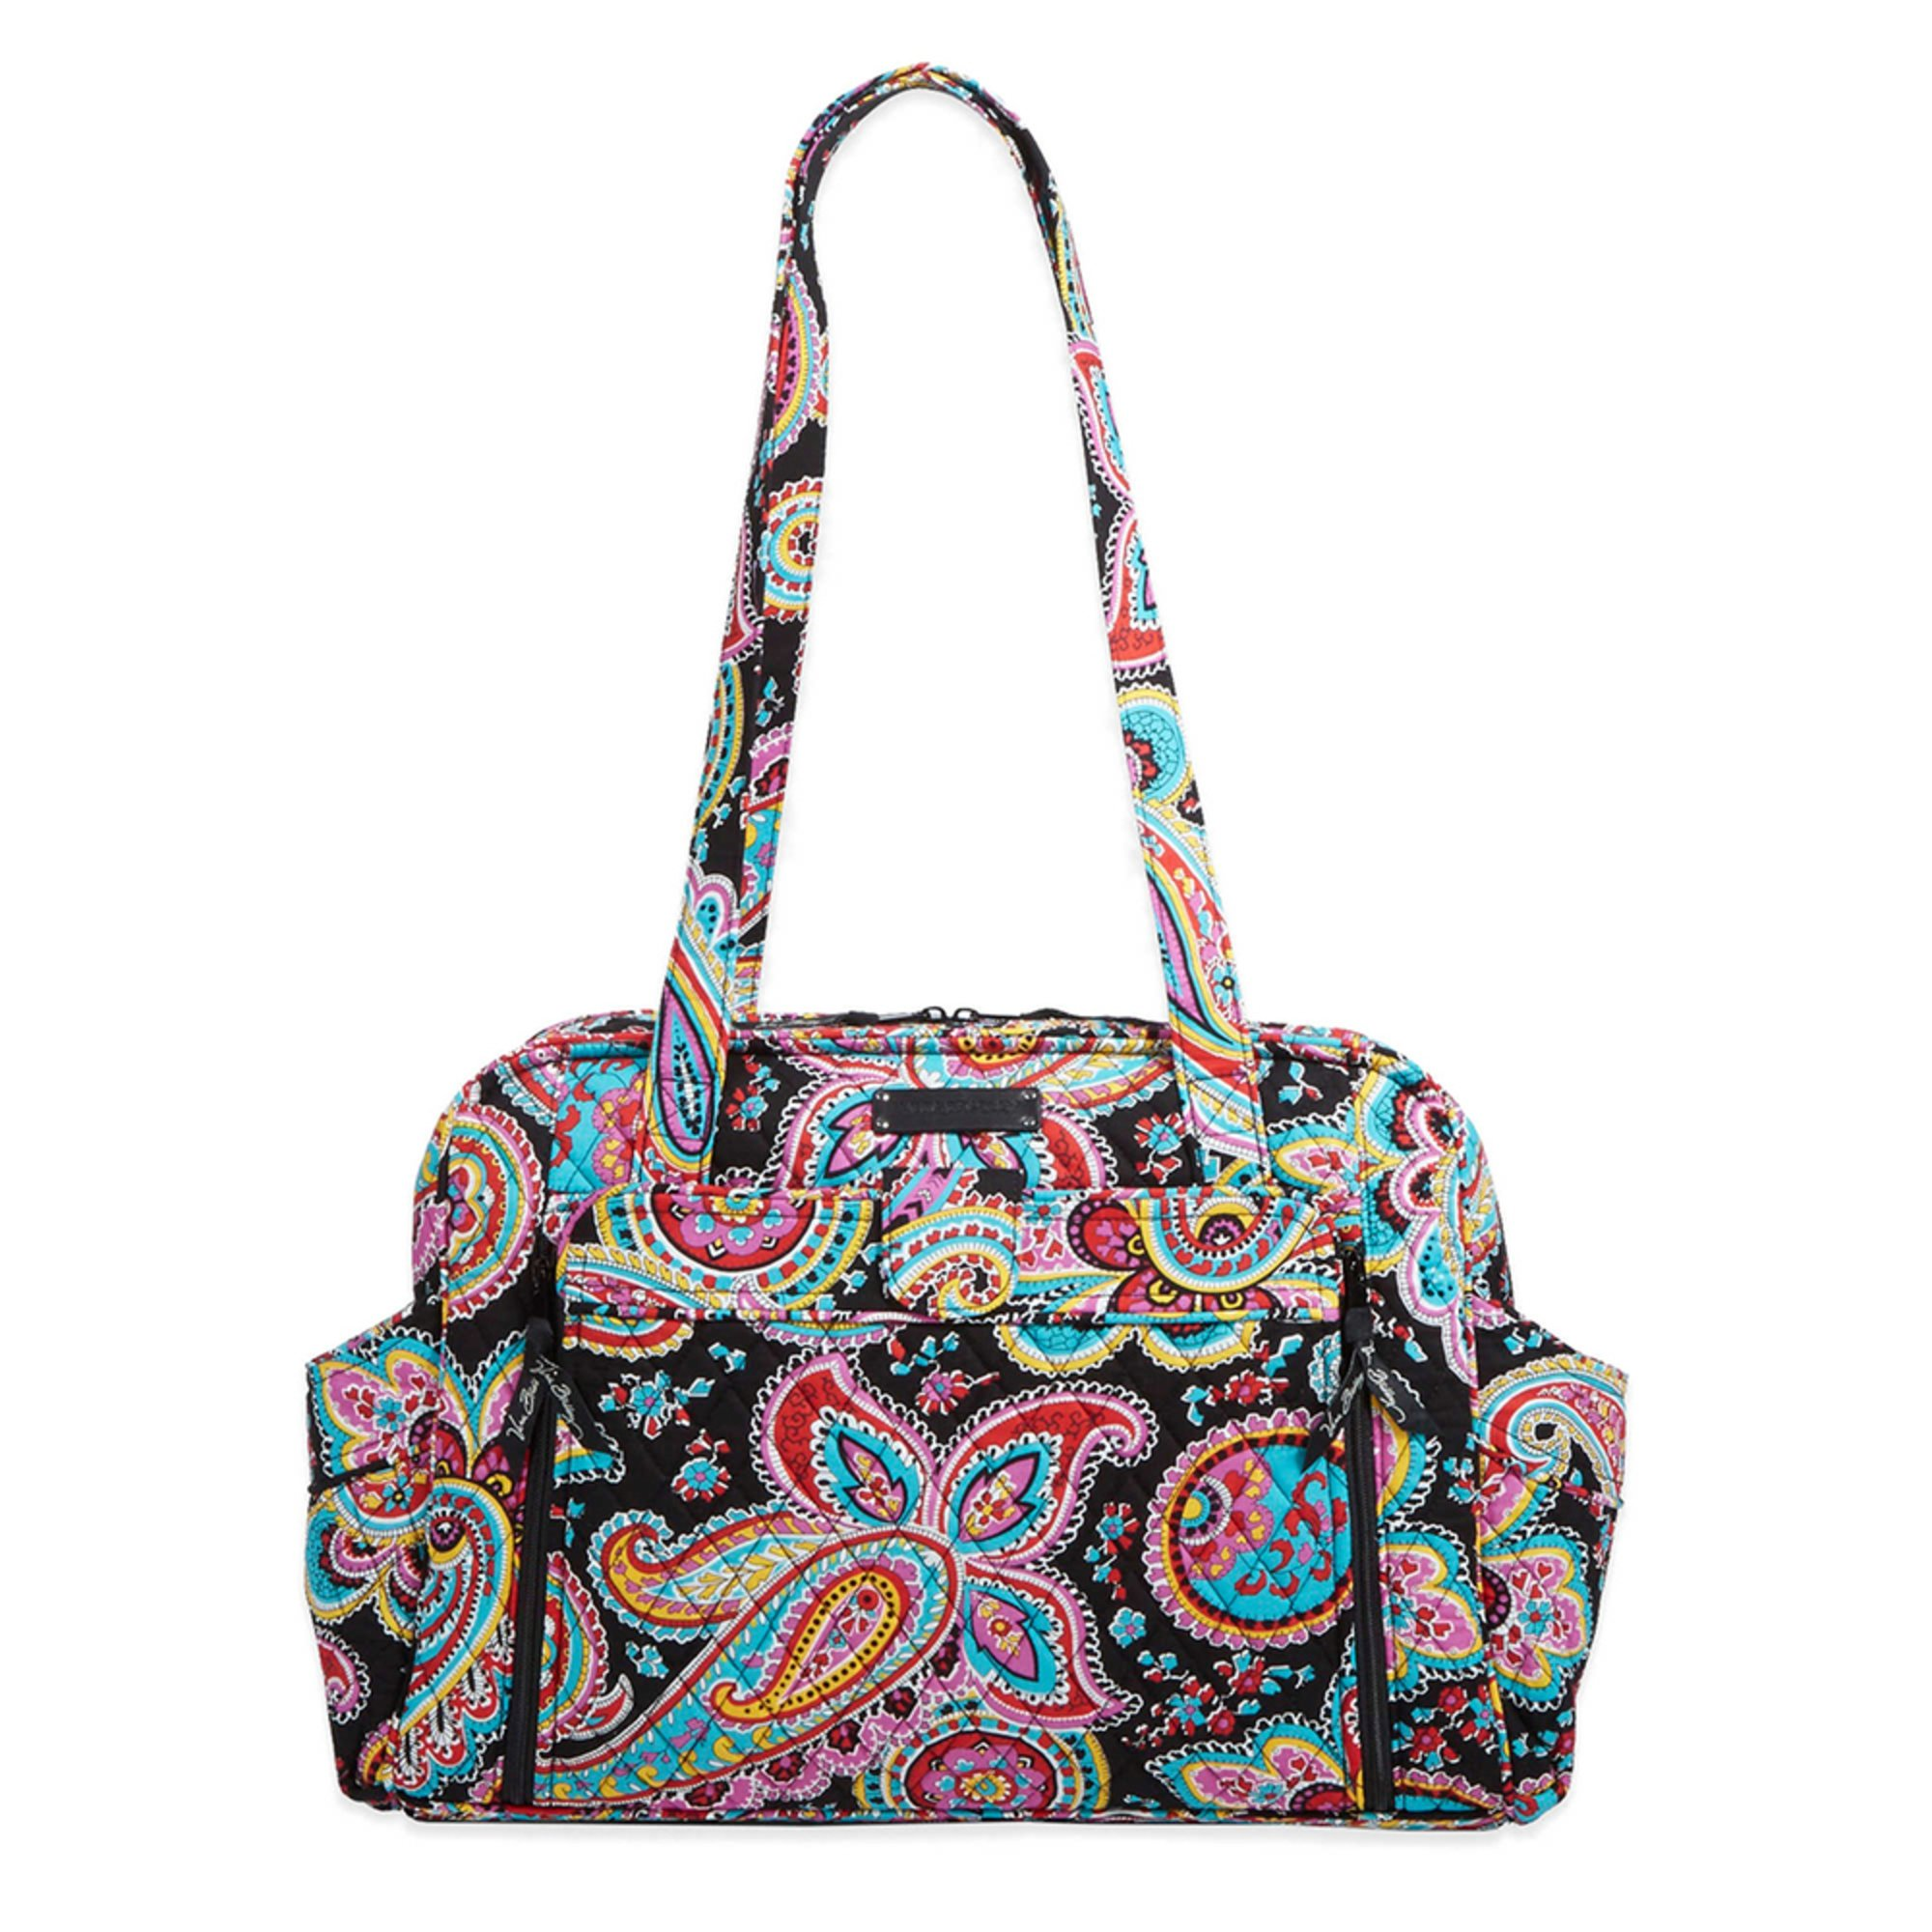 vera bradley stroll around baby bag parisian paisley totes kids shop your navy exchange. Black Bedroom Furniture Sets. Home Design Ideas